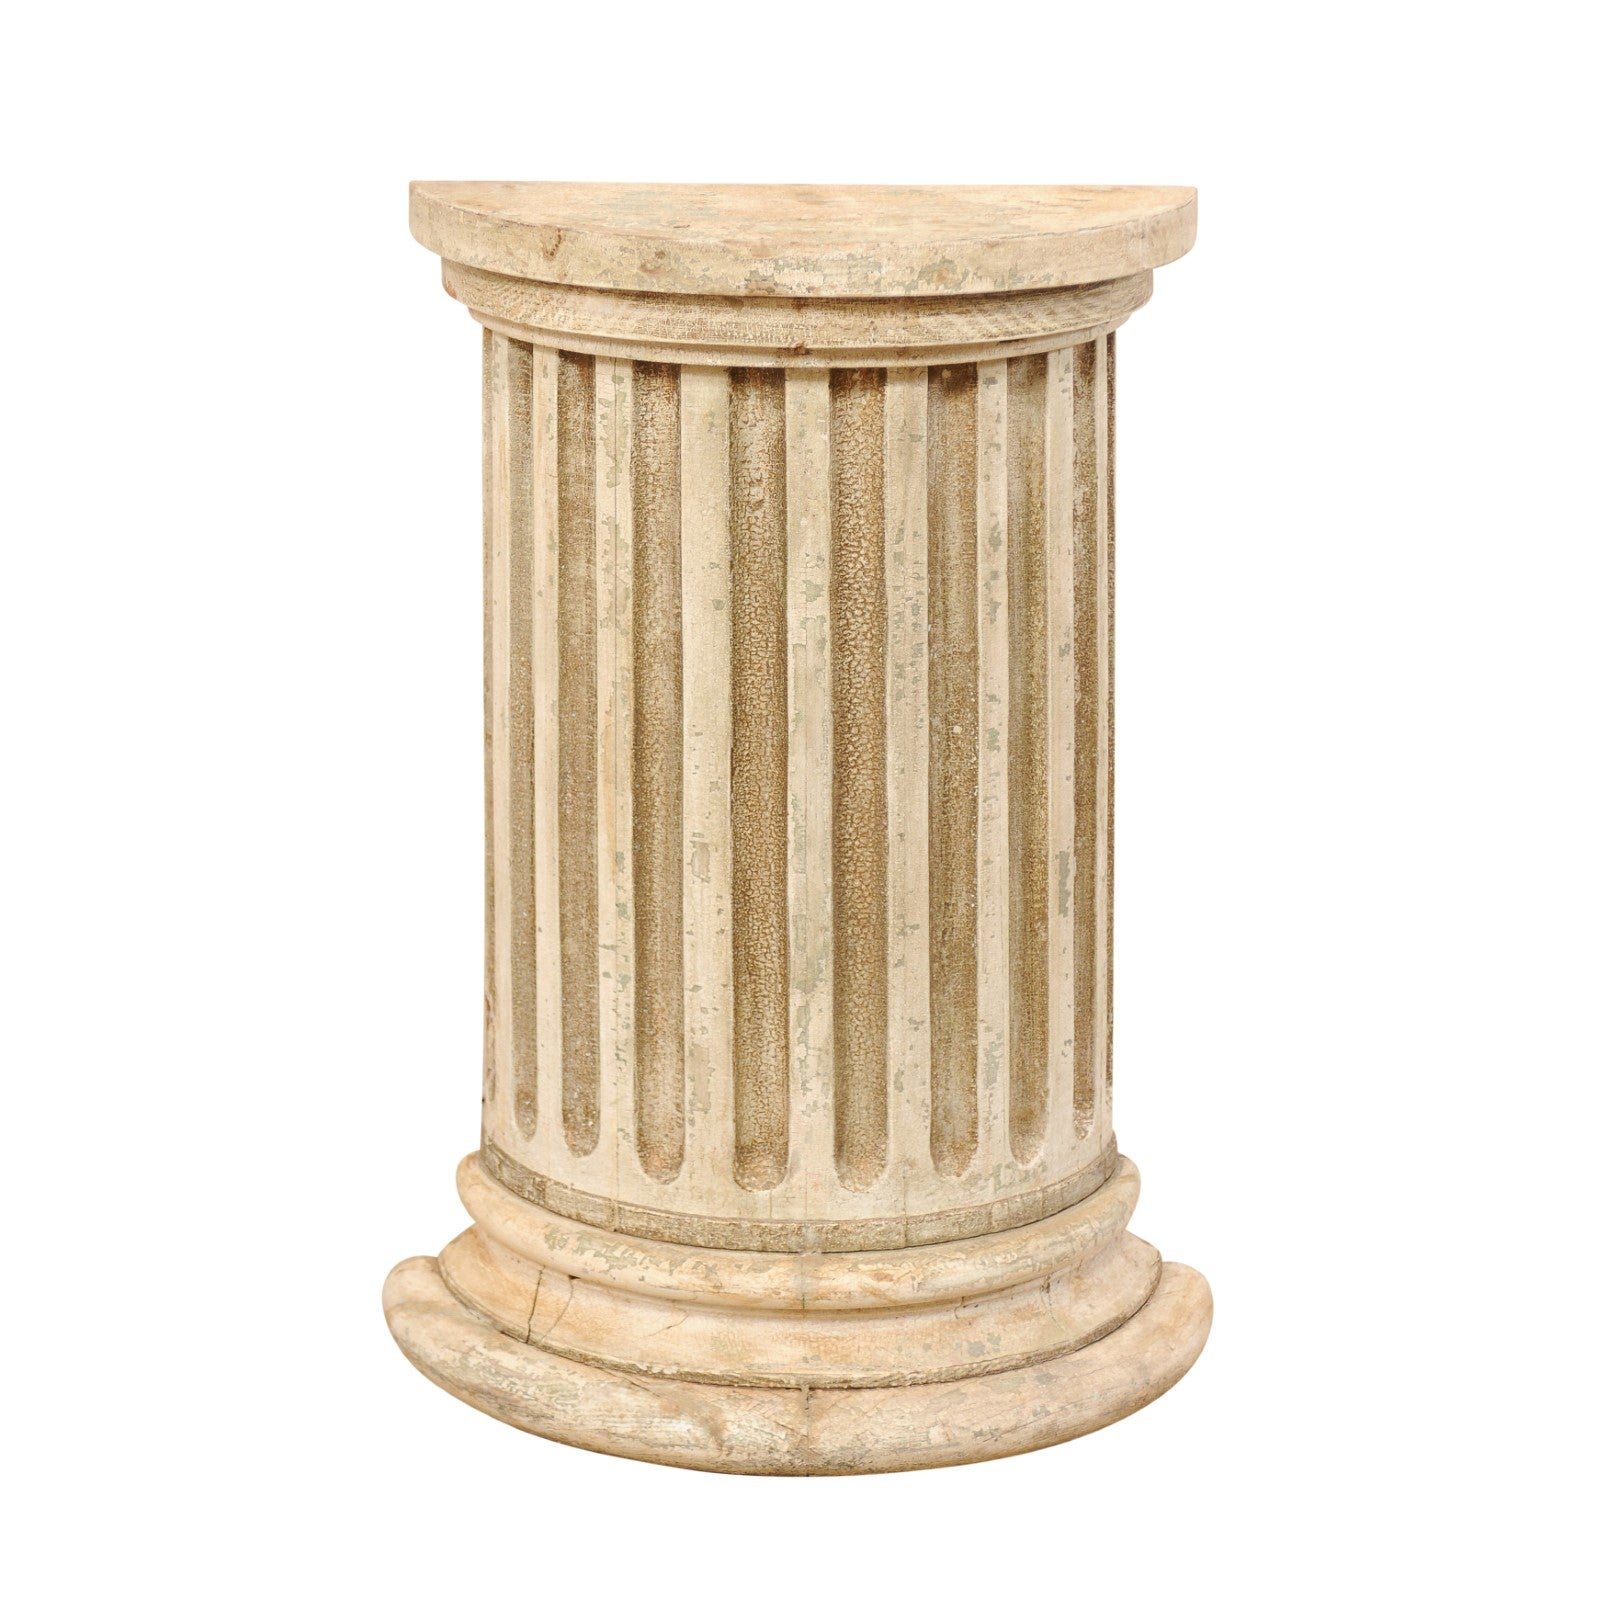 Italian 19th Century Fluted Half Column Pedestal